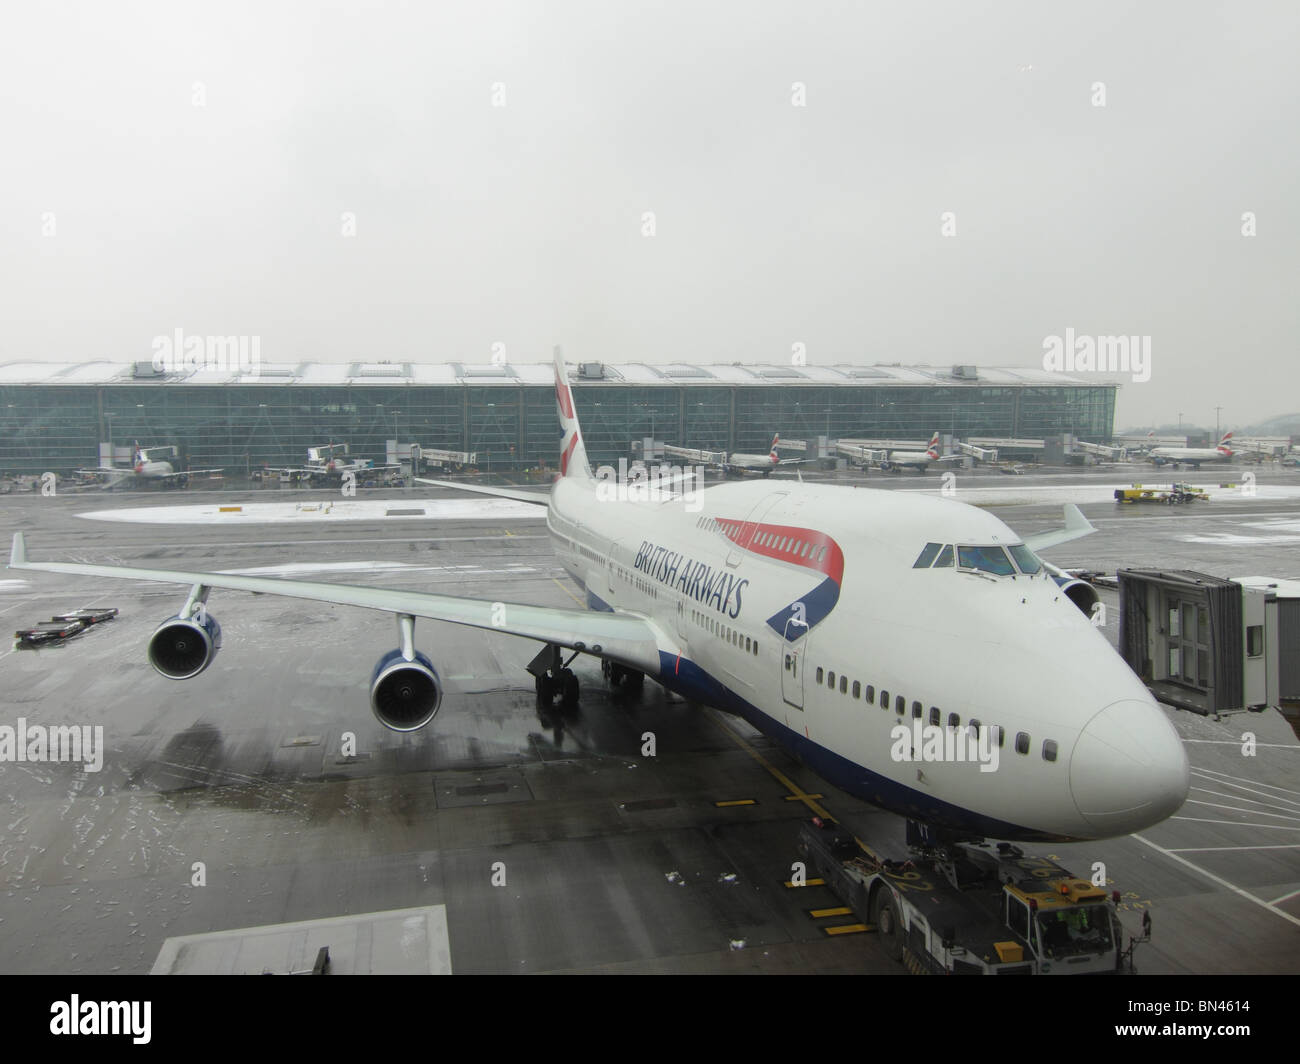 British Airways Boeing 747 Jumbo Jet at Heathrow Terminal 5 London England UK Europe - Stock Image